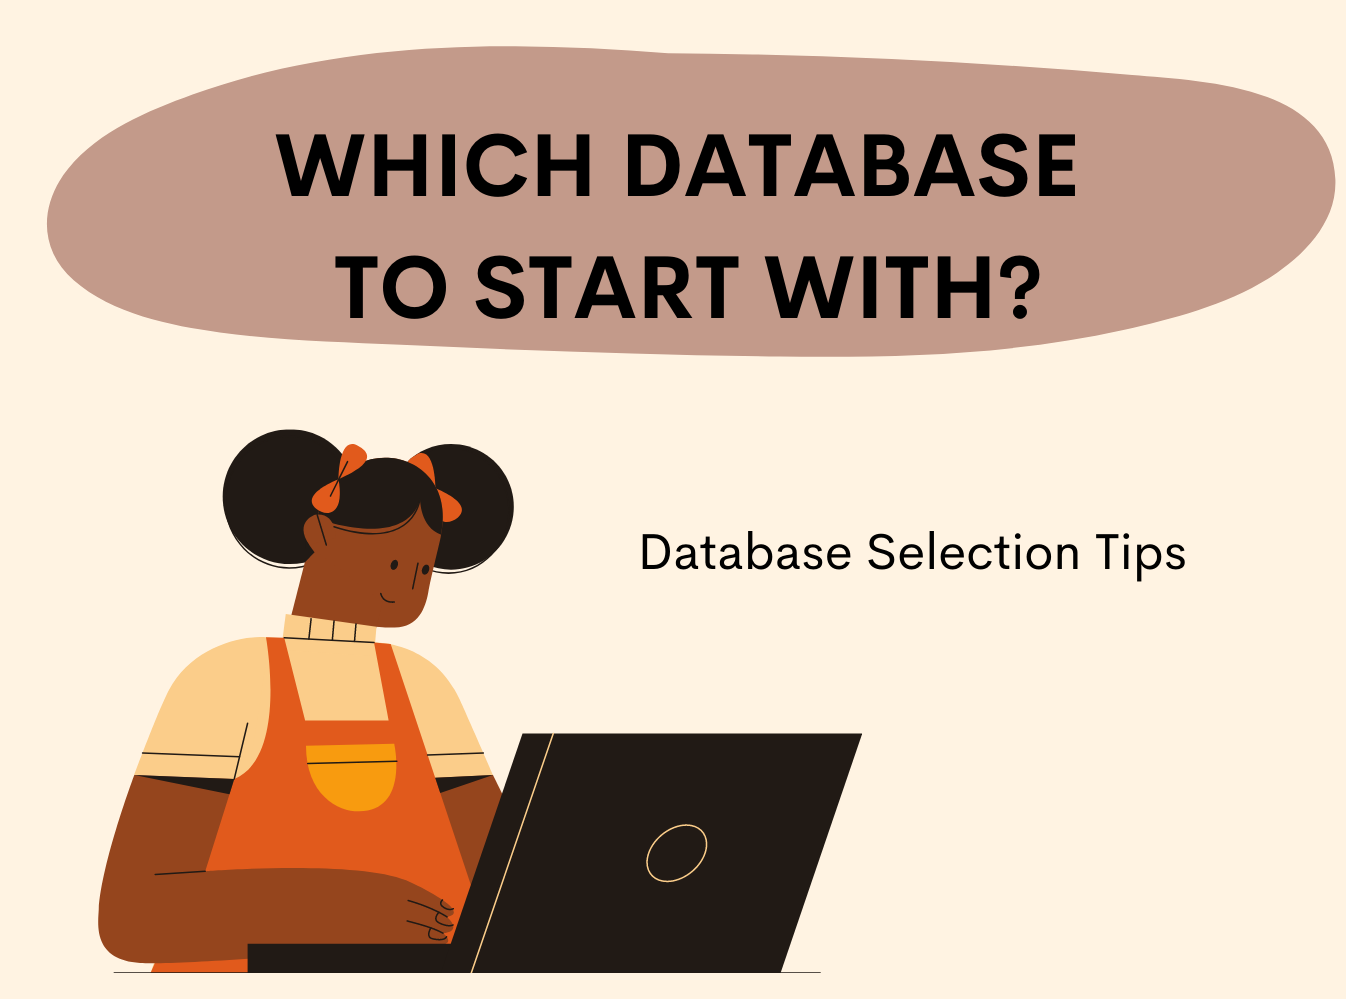 Database selection tips